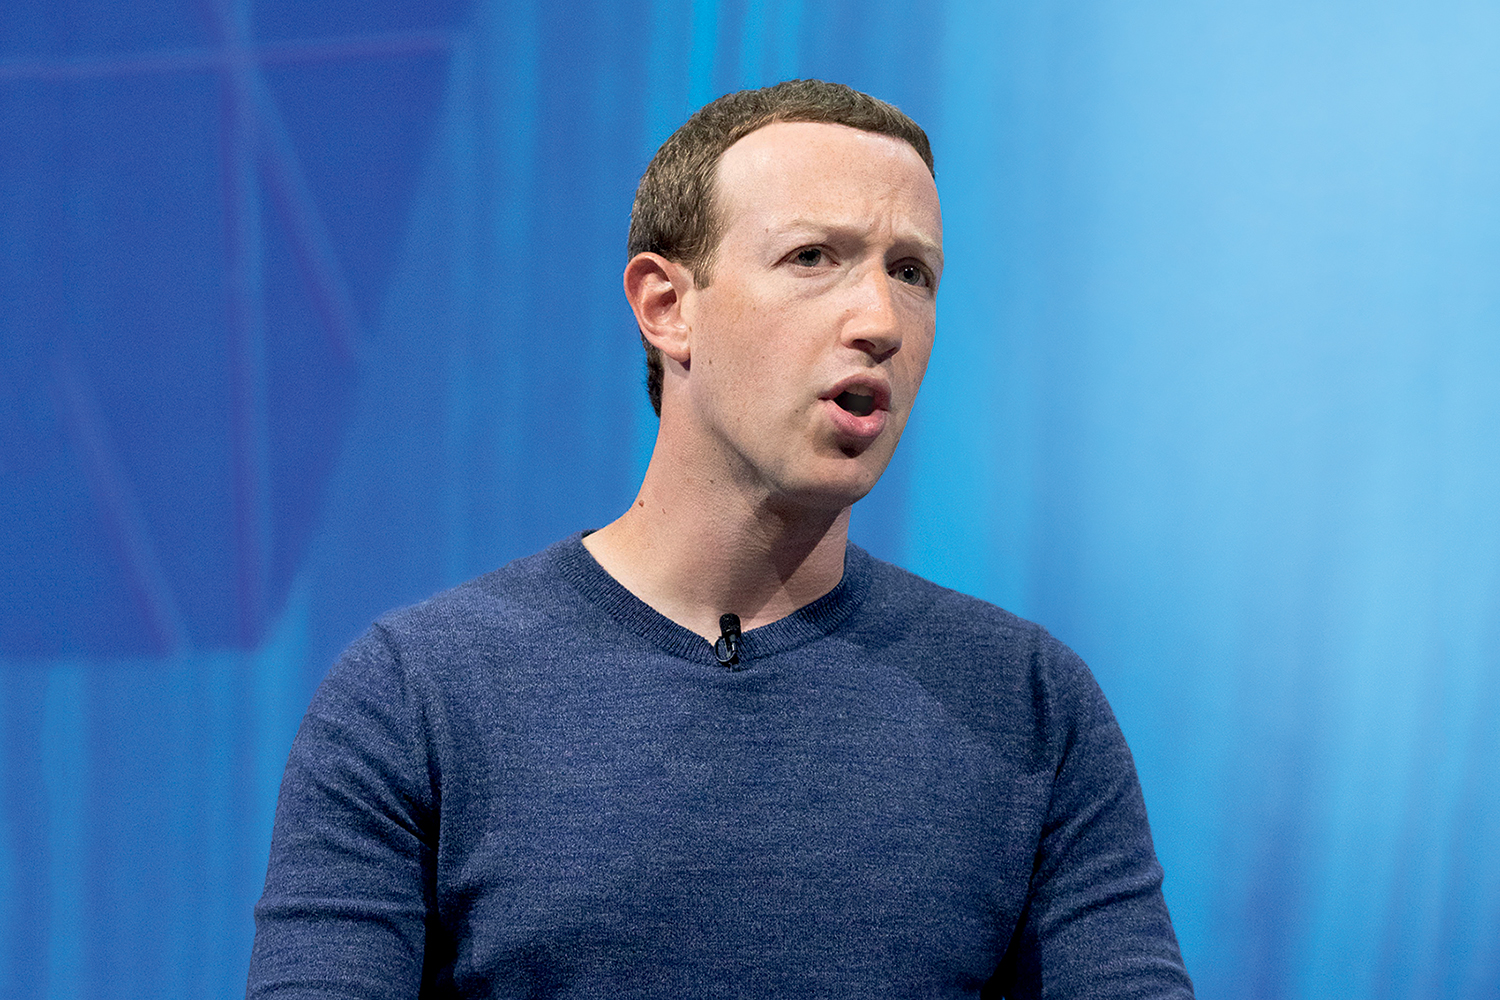 962130610 - Mark Zuckerberg, chief executive officer and founder of Facebook Inc. attends the Viva Tech start-up and technology gathering at Parc des Expositions Porte de Versailles on May 24, 2018 in Paris, France. The VivaTech exhibition in Paris brings together nearly 1800 start ups alongside the largest international groups. Credito: Christophe Morin/IP3/Getty Images